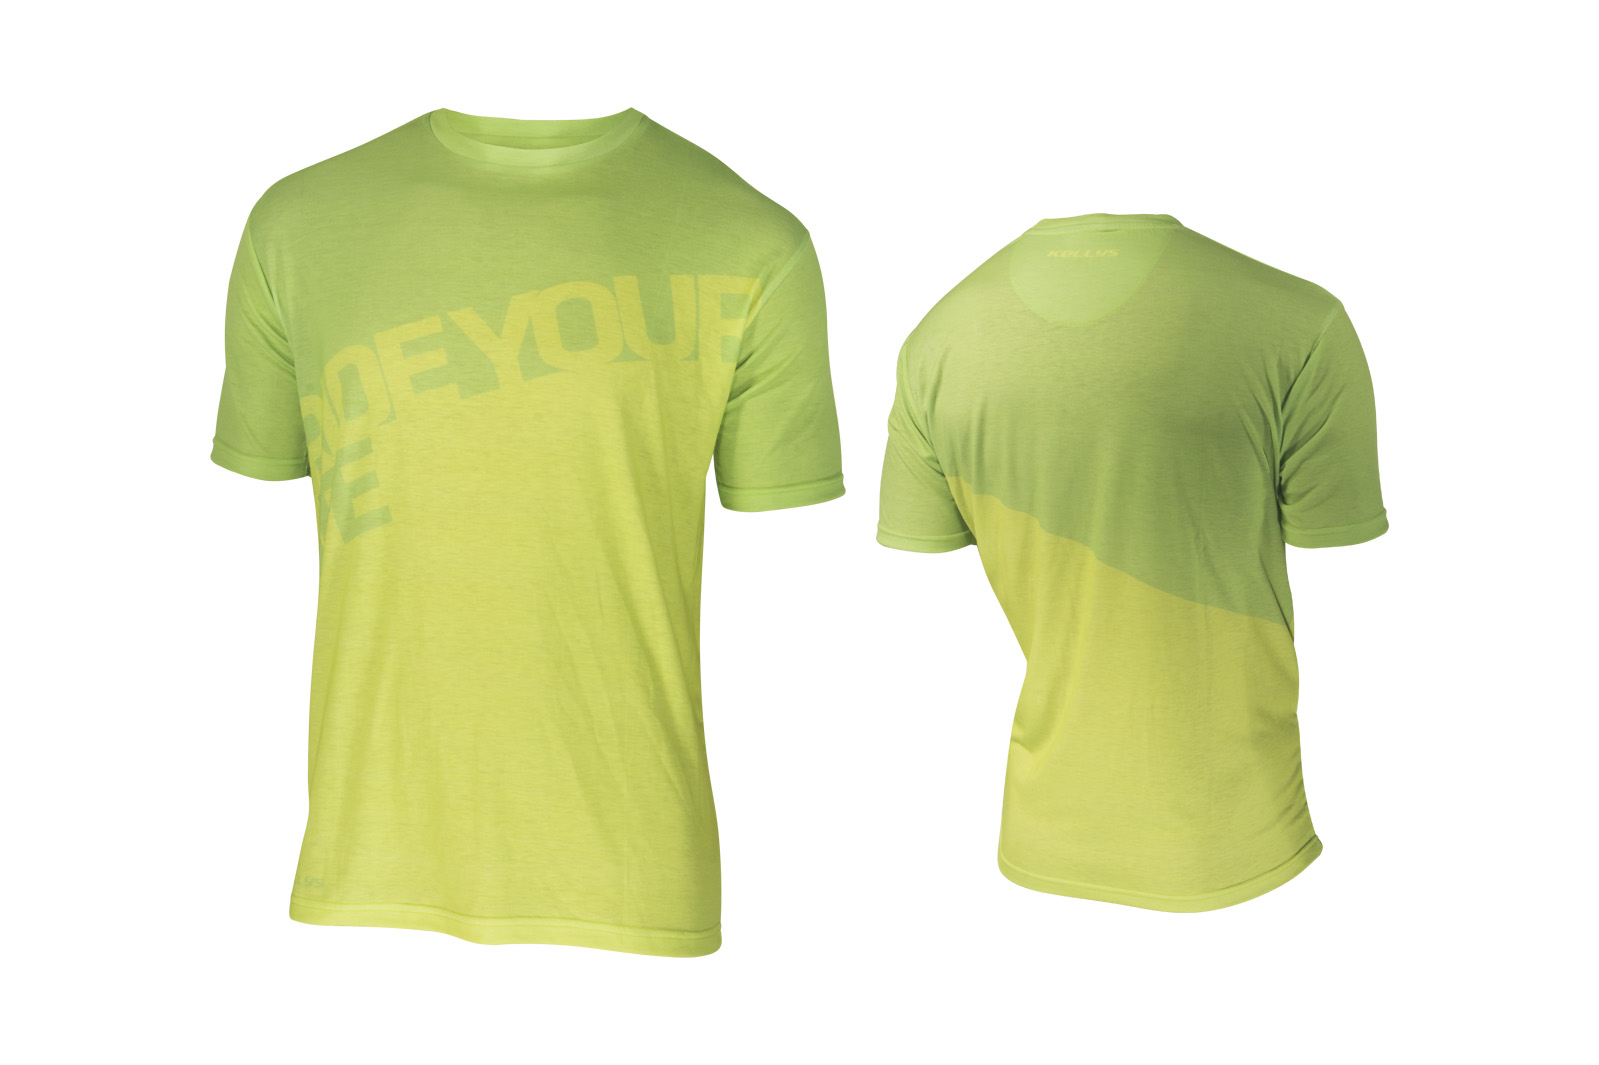 T-Shirt KELLYS RIDE YOUR LIFE kurzarm Lime - L - bagier Sports GmbH